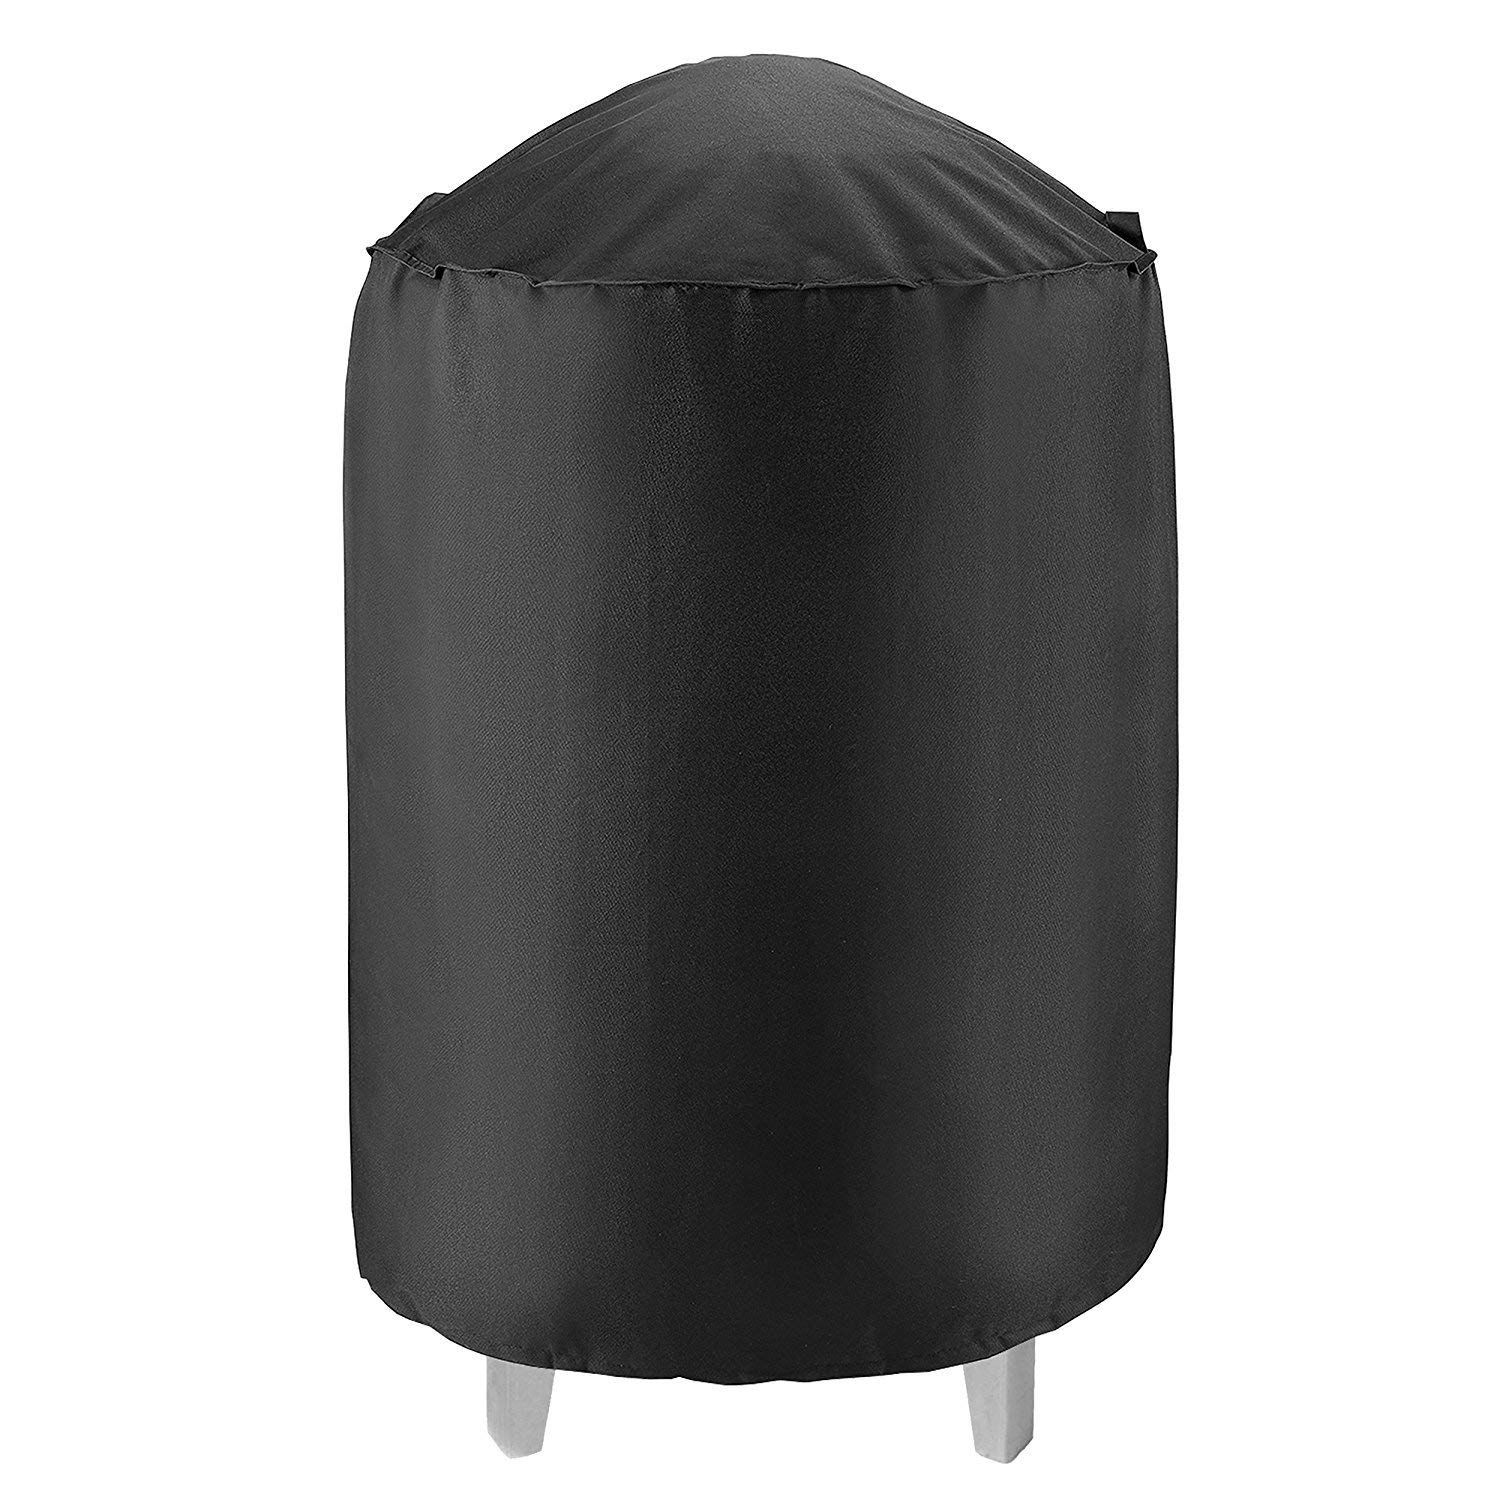 Cheap Smoker Grill Cover Find Smoker Grill Cover Deals On Line At